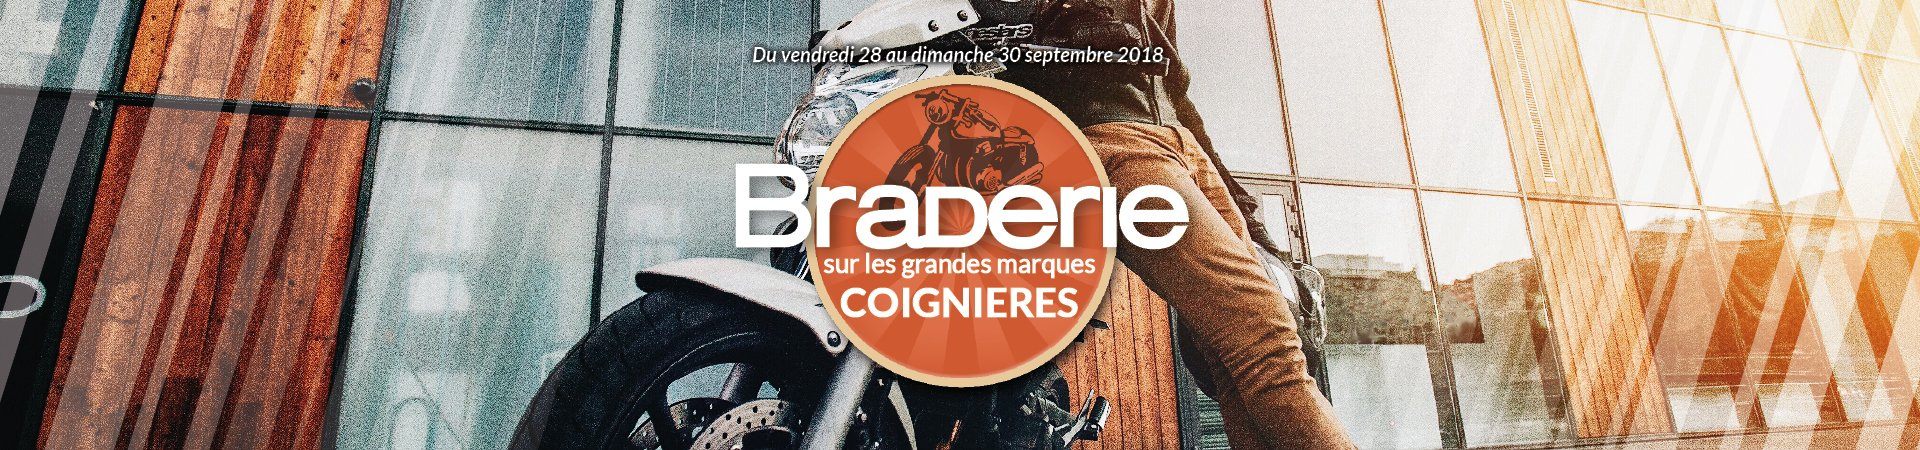 braderie cardy coignieres